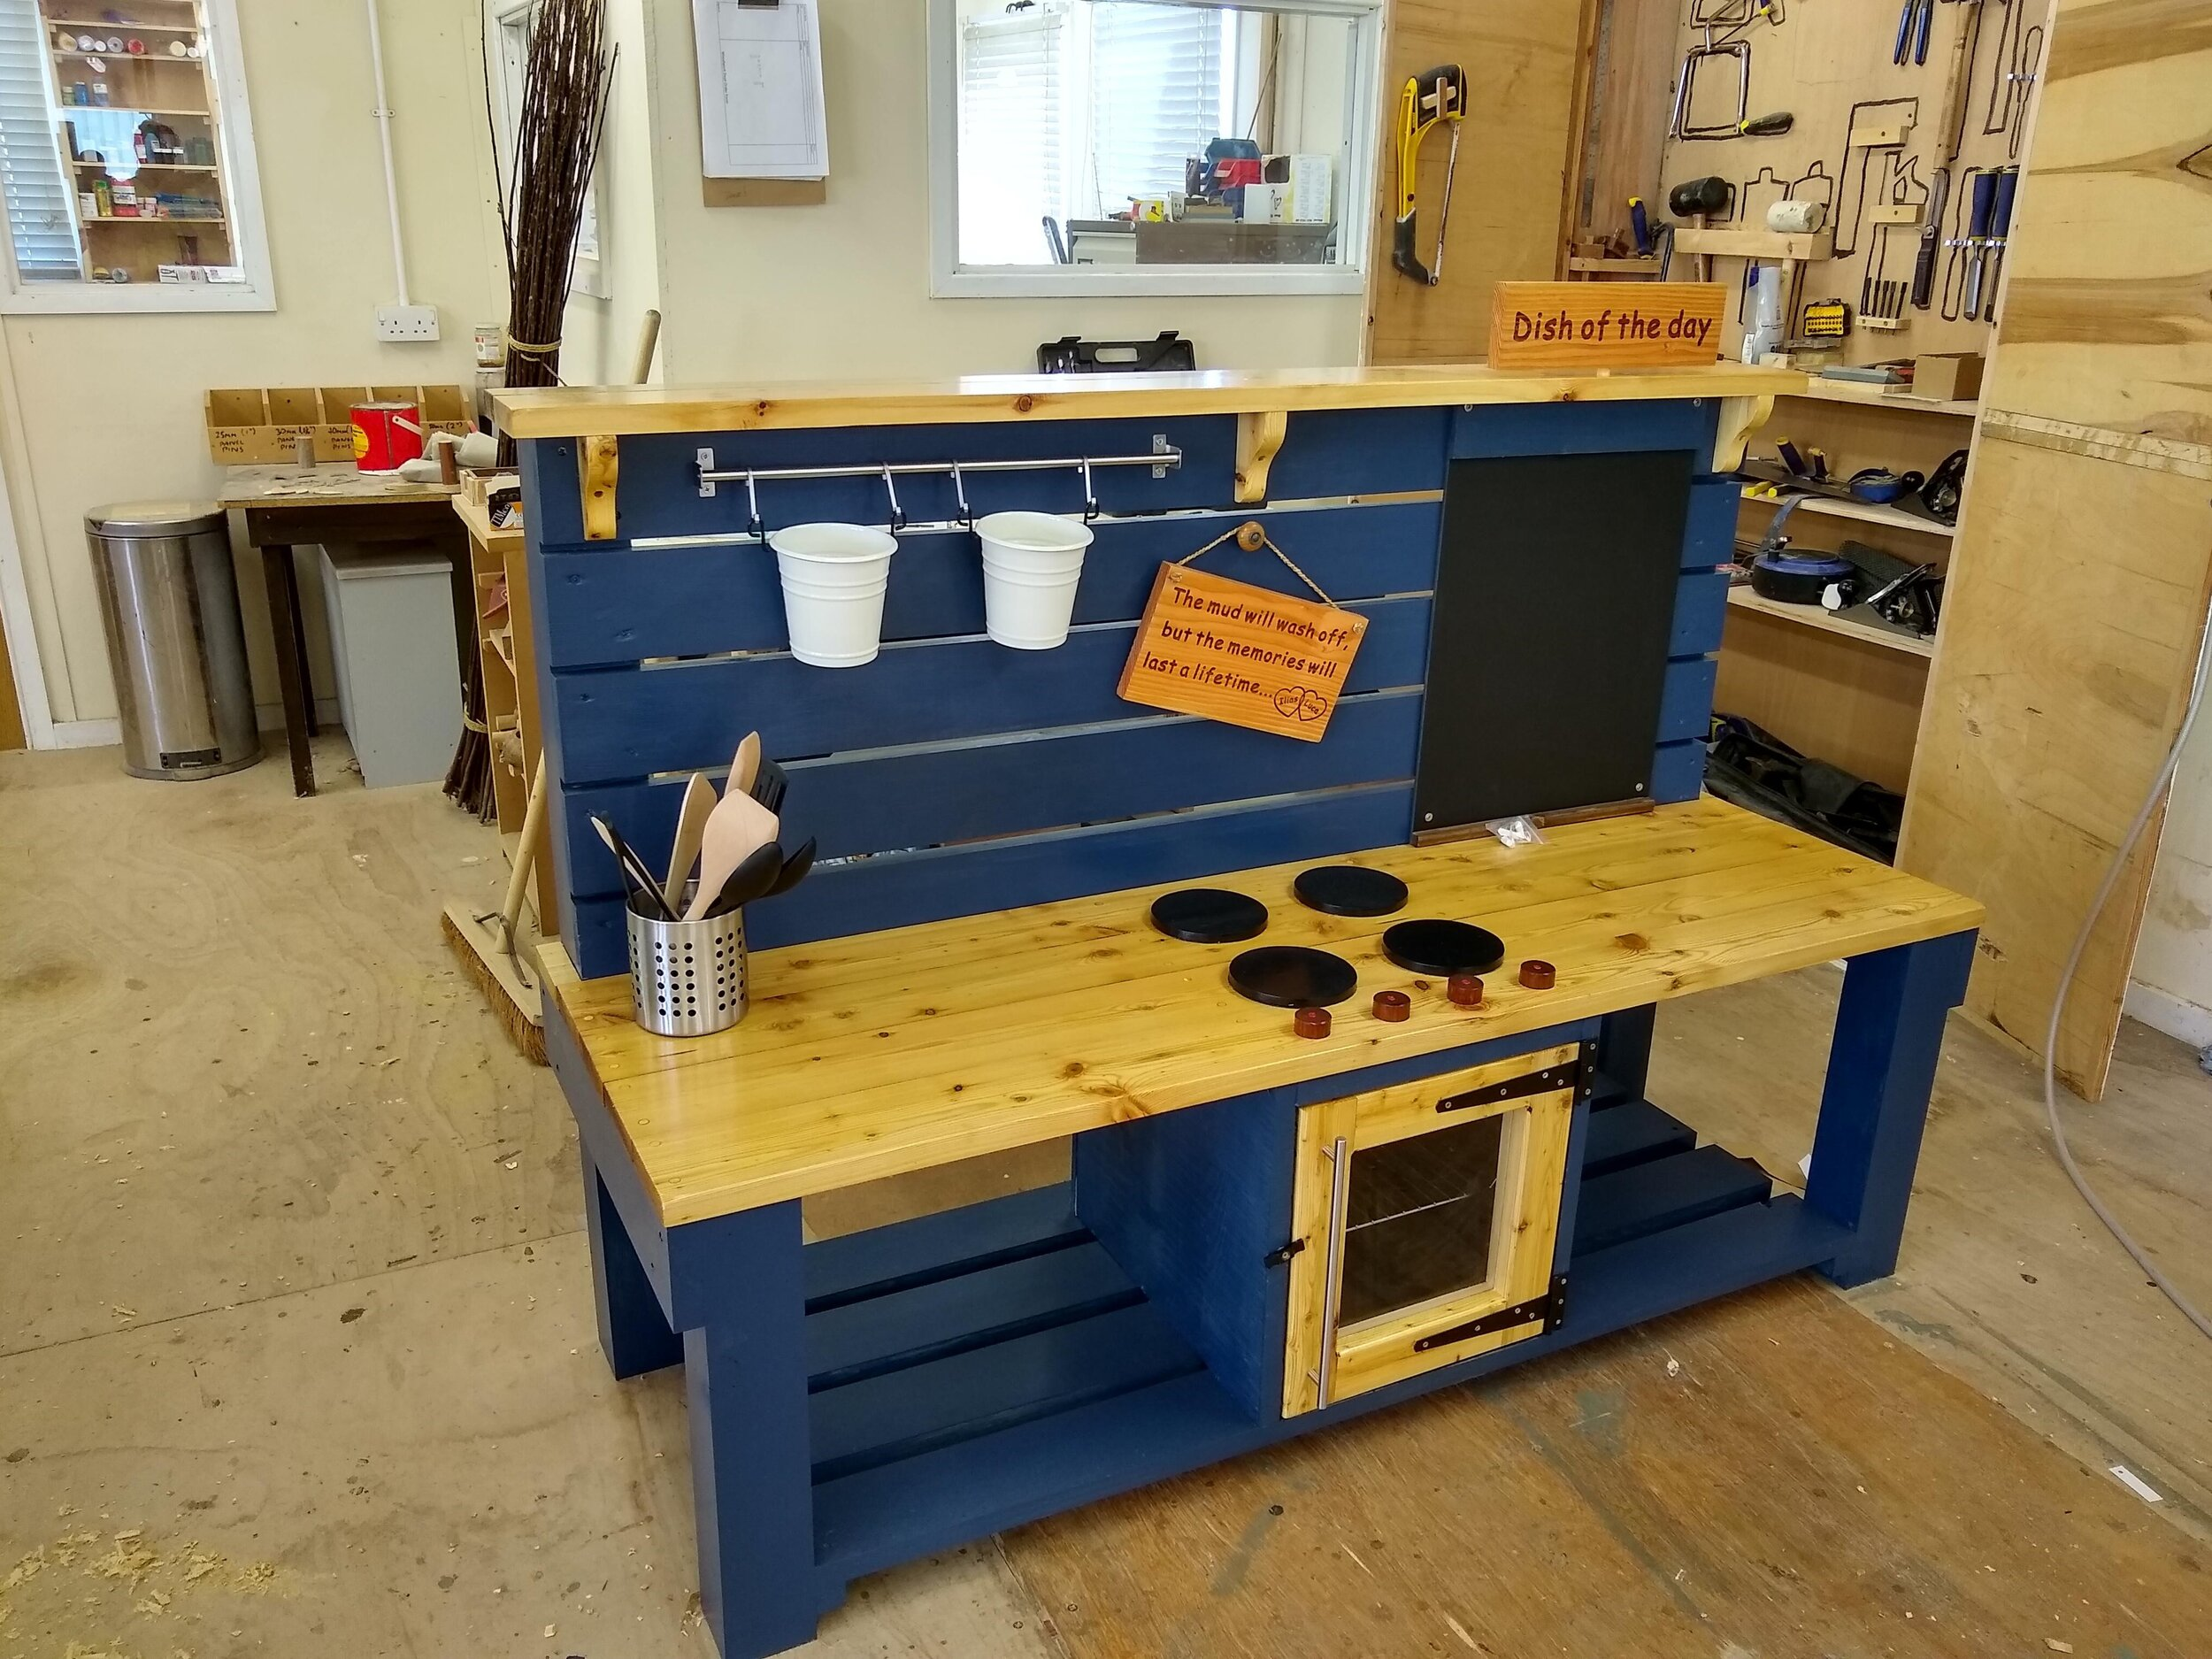 The finished mud kitchen.